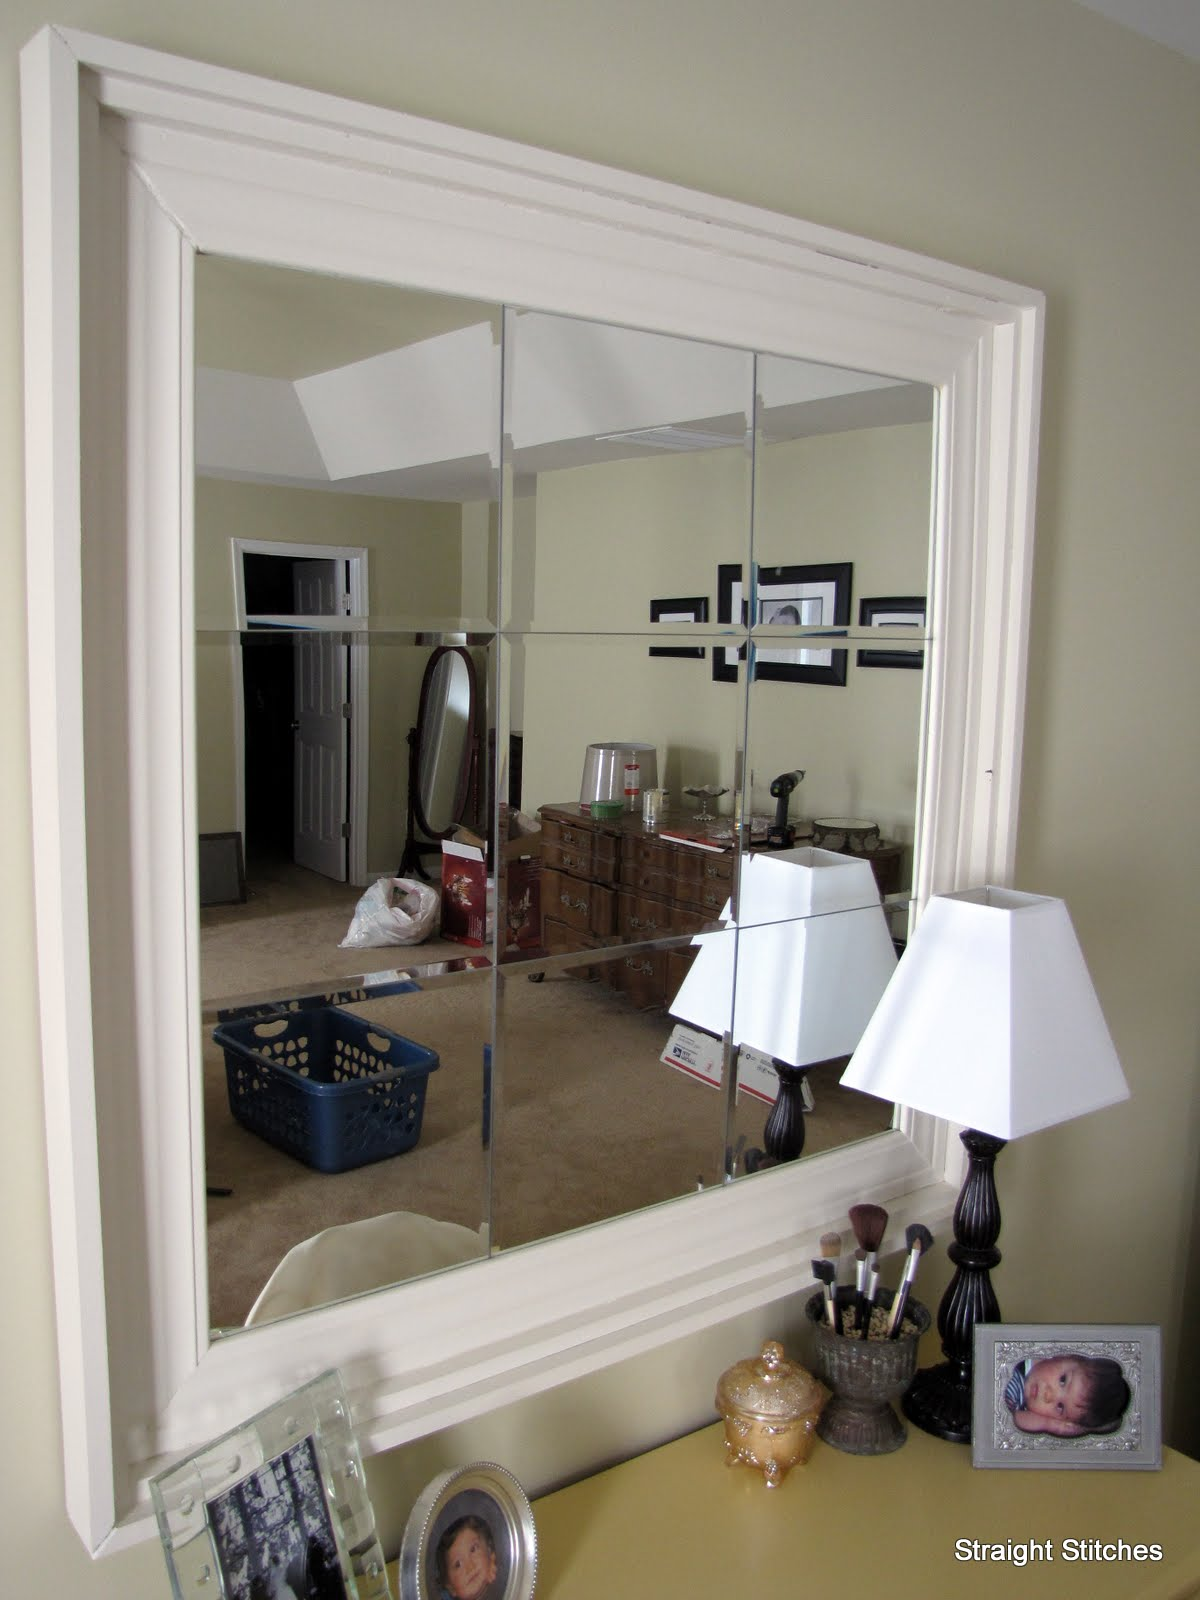 Remodelaholic whos the fairest one of all mirror tutorial the wall space above the vanity needed something spectacular its a big space and that poor vanity was being a little overwhelmed geotapseo Choice Image